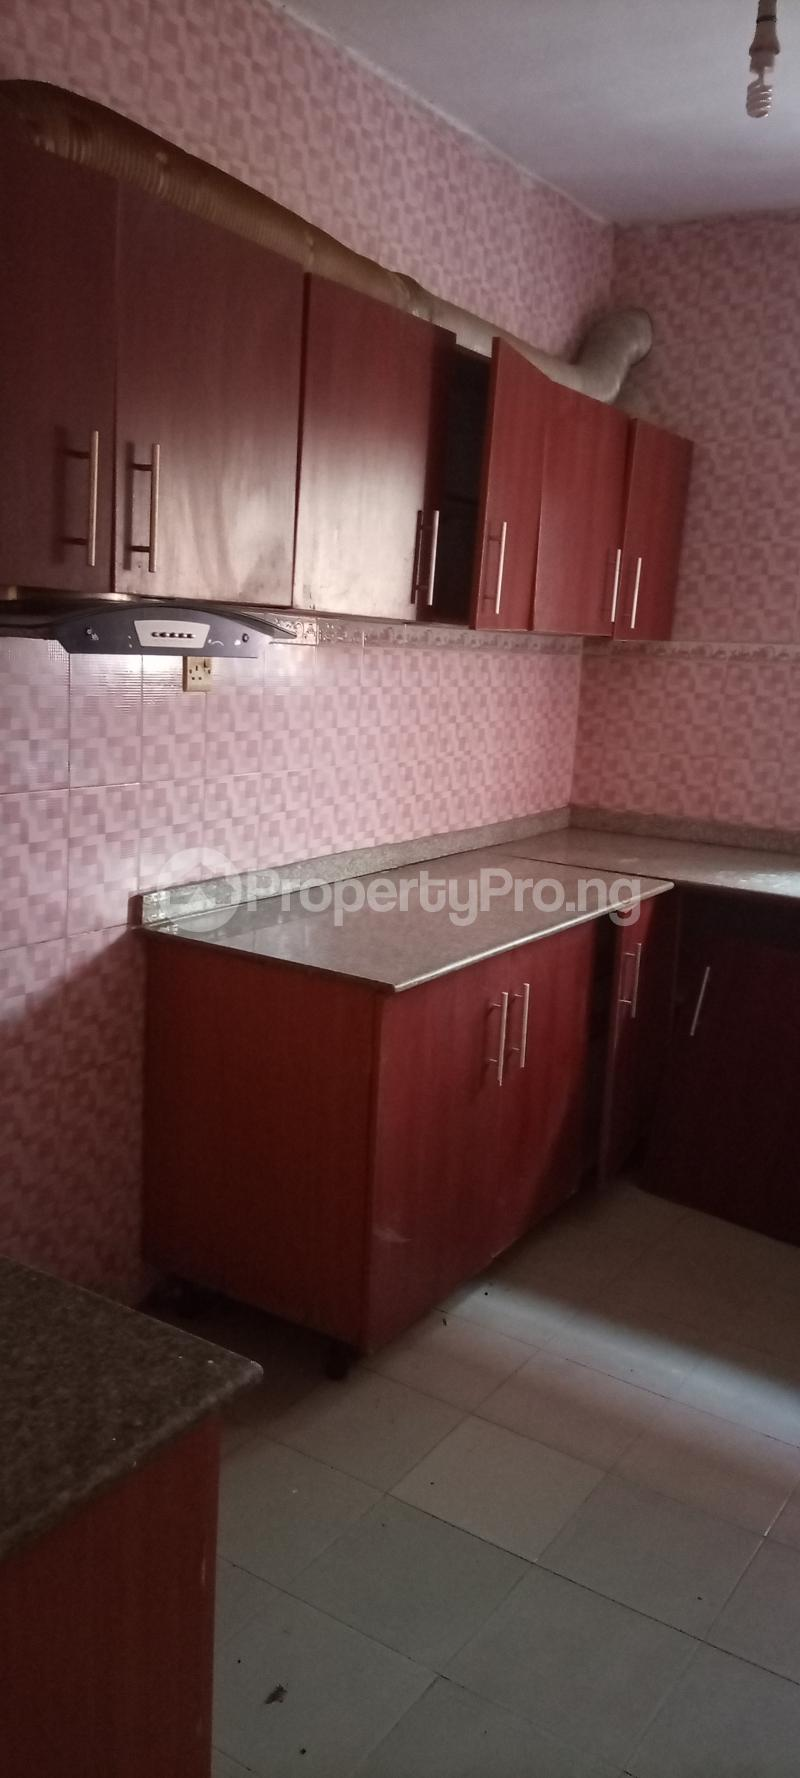 3 bedroom Flat / Apartment for rent Ajao Estate Isolo. Lagos Mainland Isolo Lagos - 3